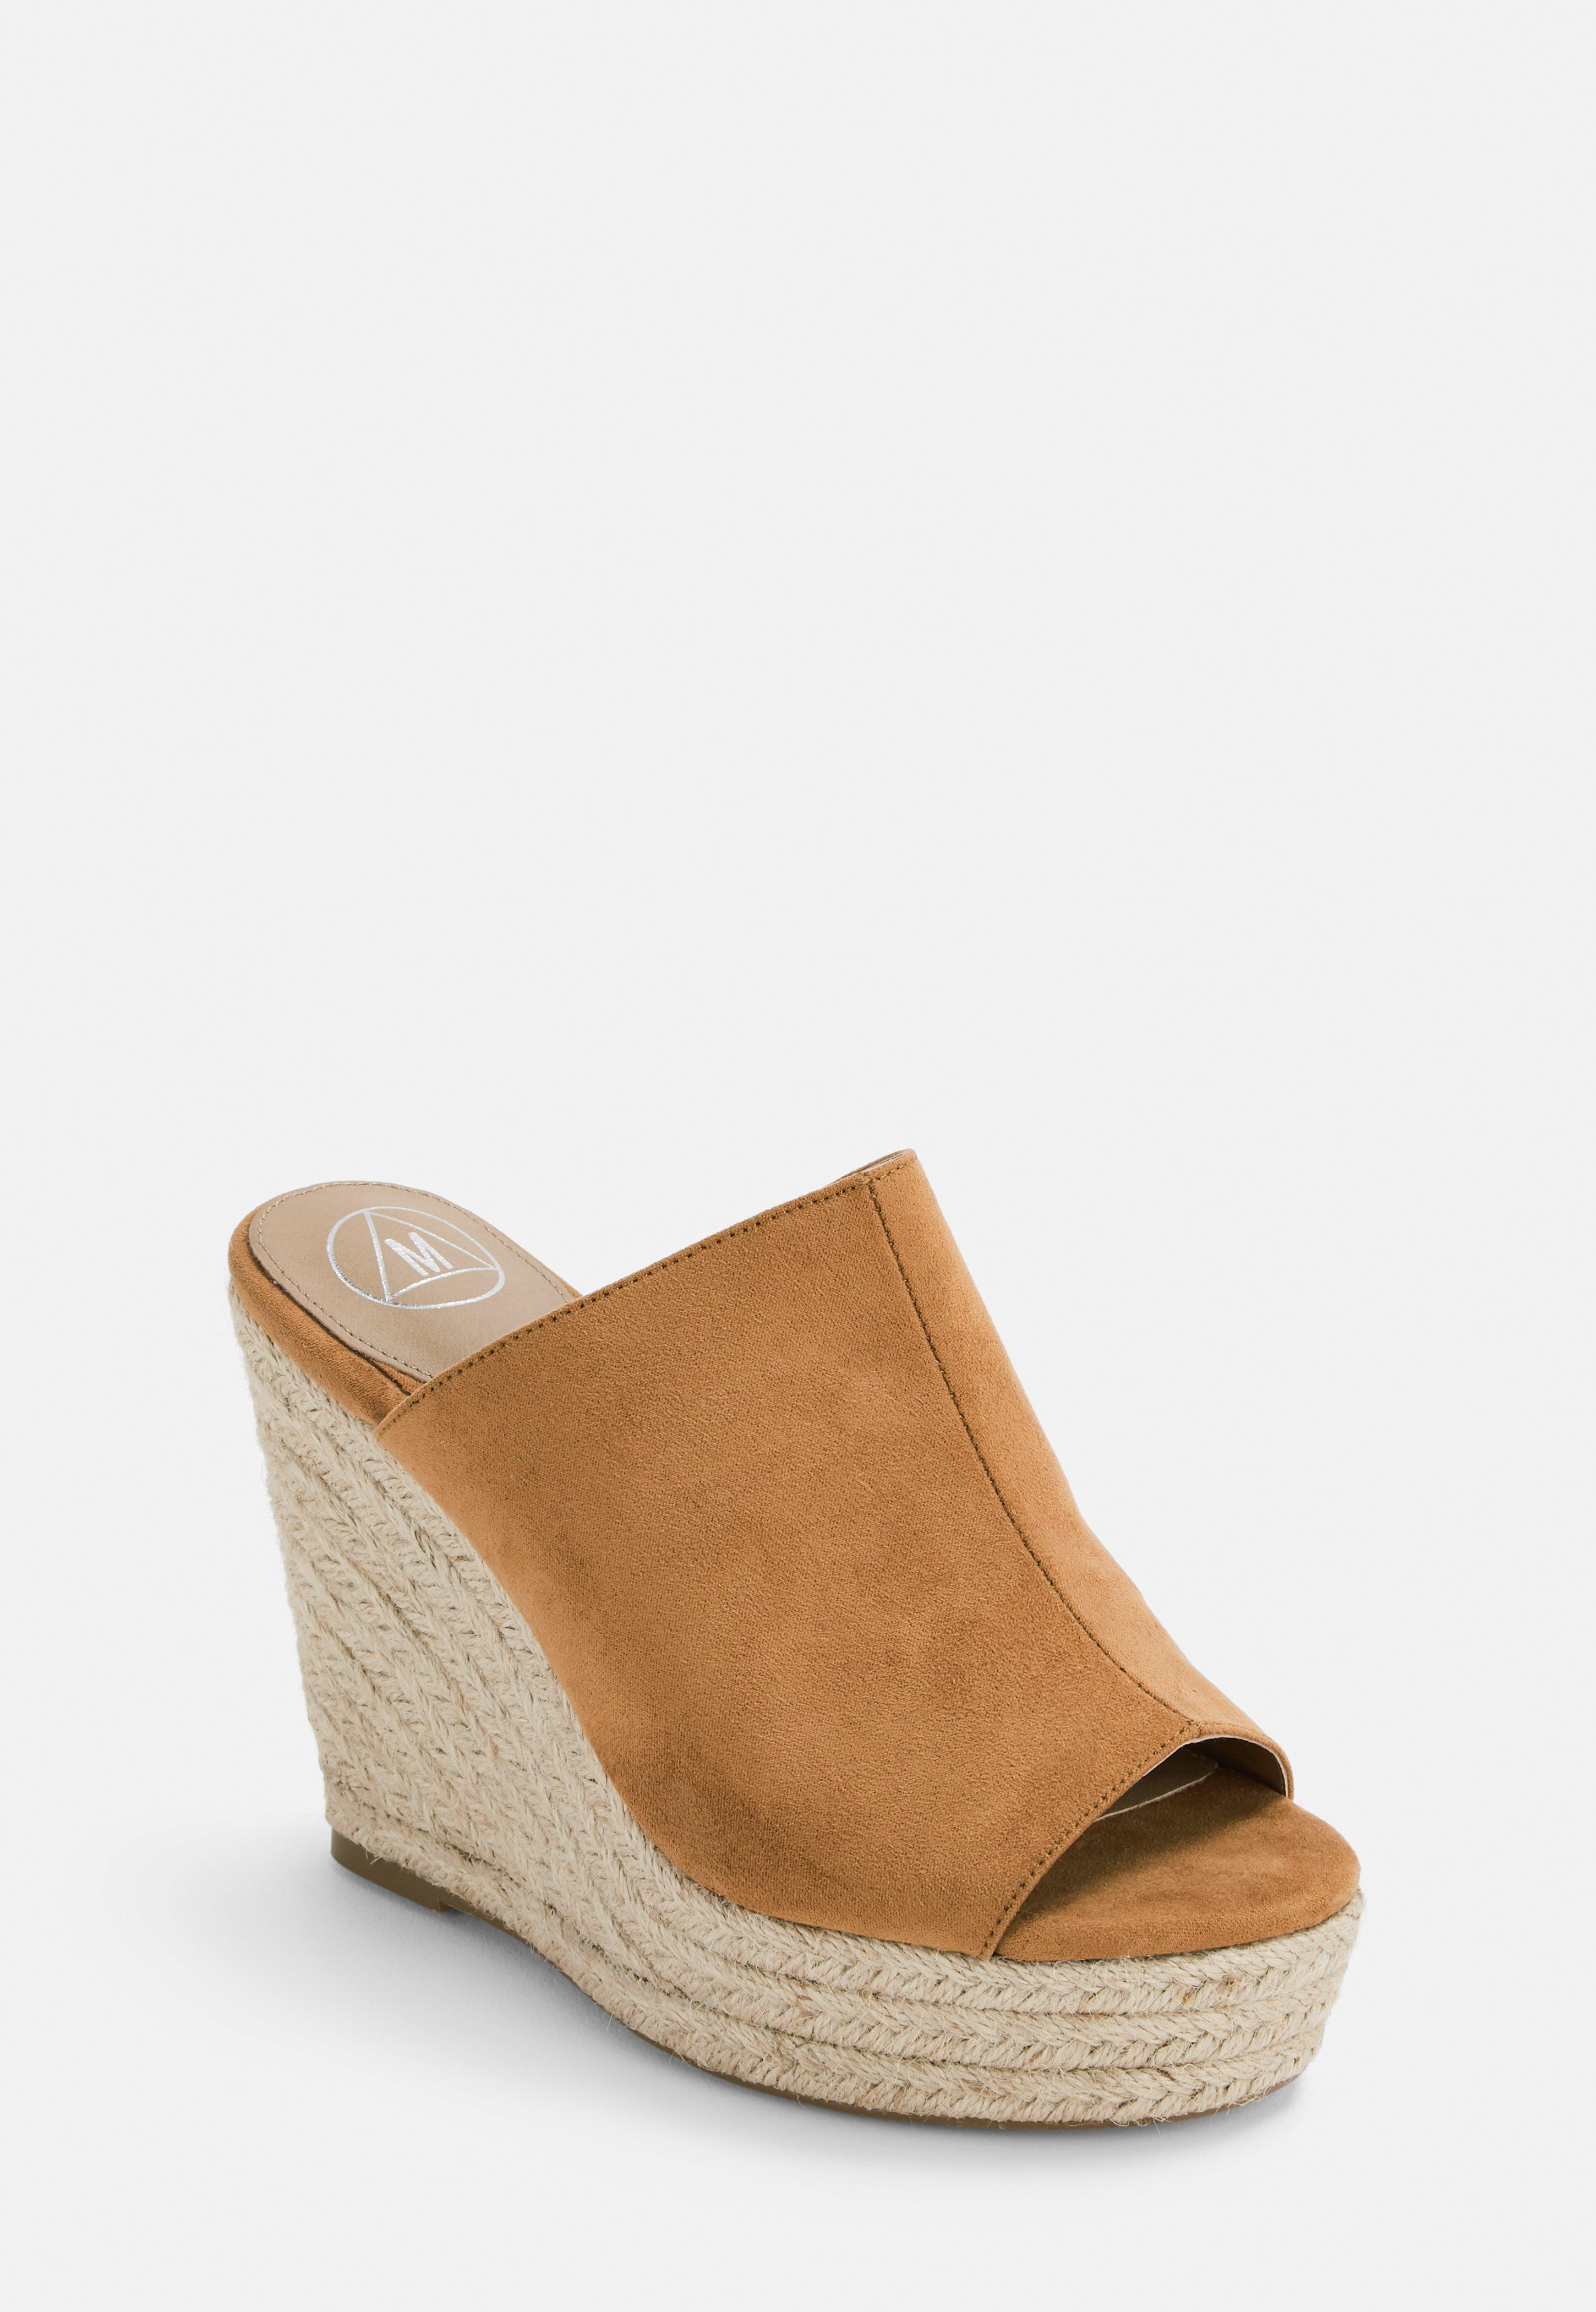 184e47762 Shoes | Women's Footwear Online UK - Missguided